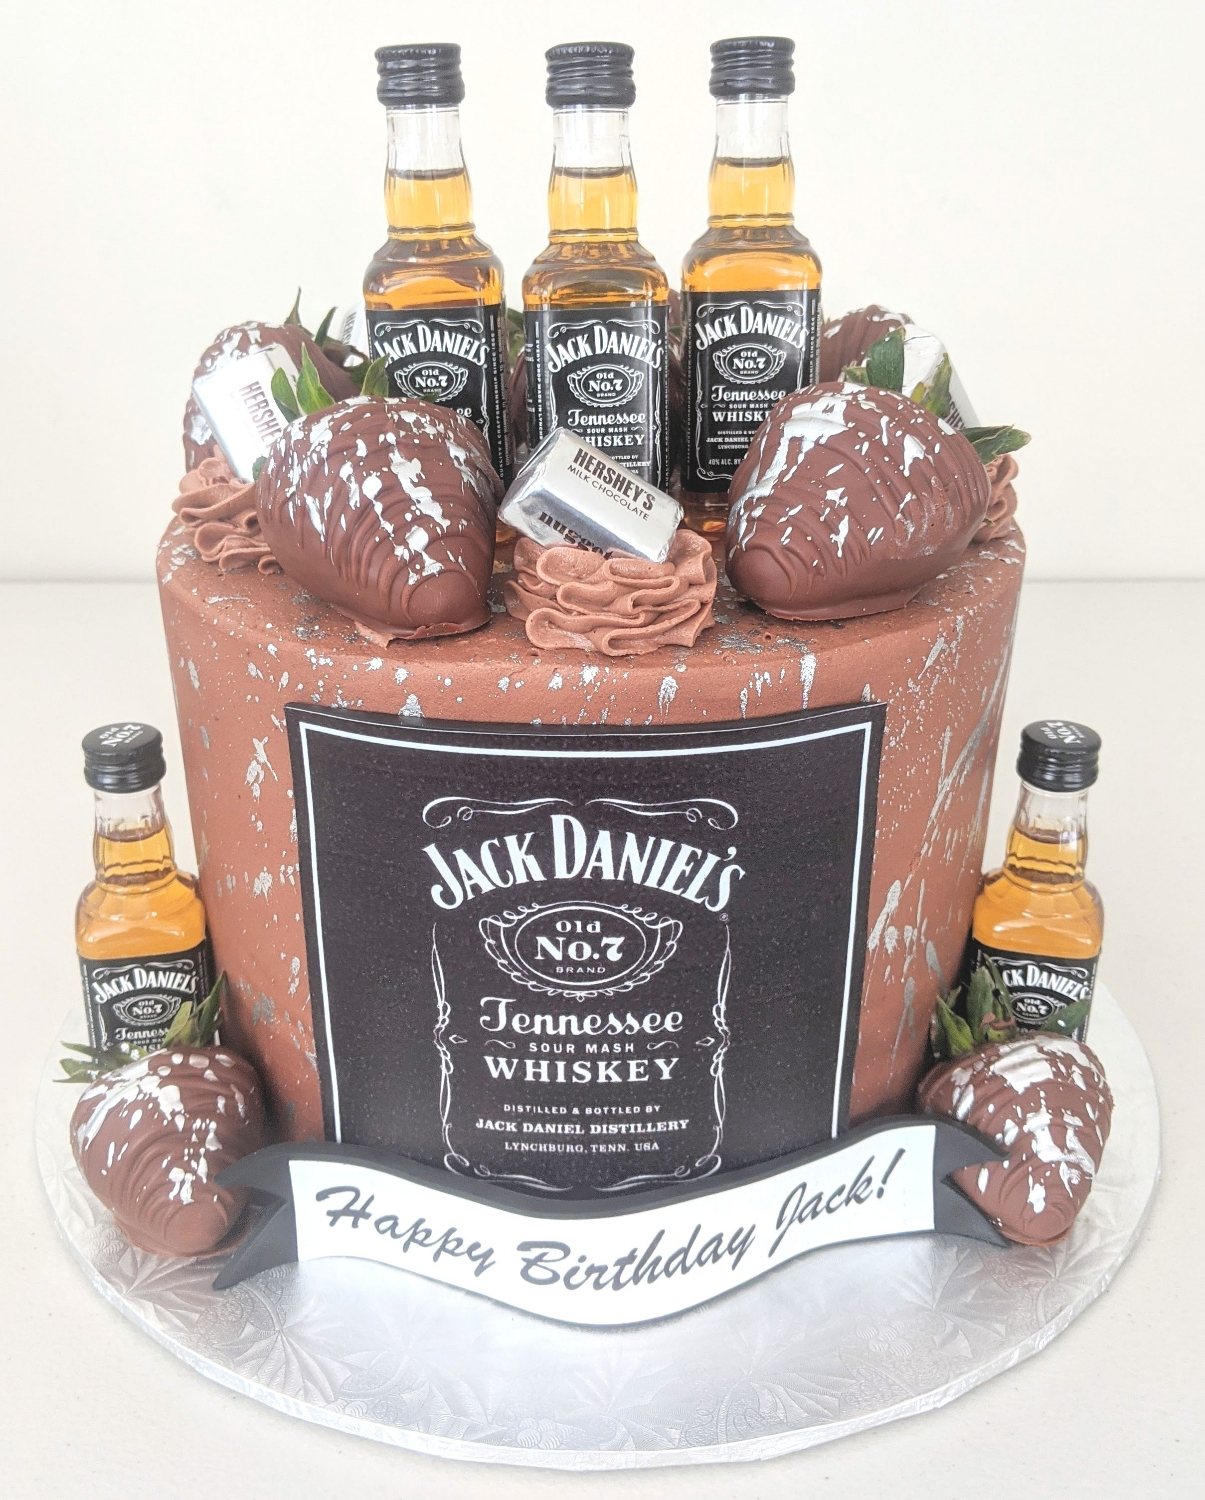 Jack Daniel's Adult Beverage Cake